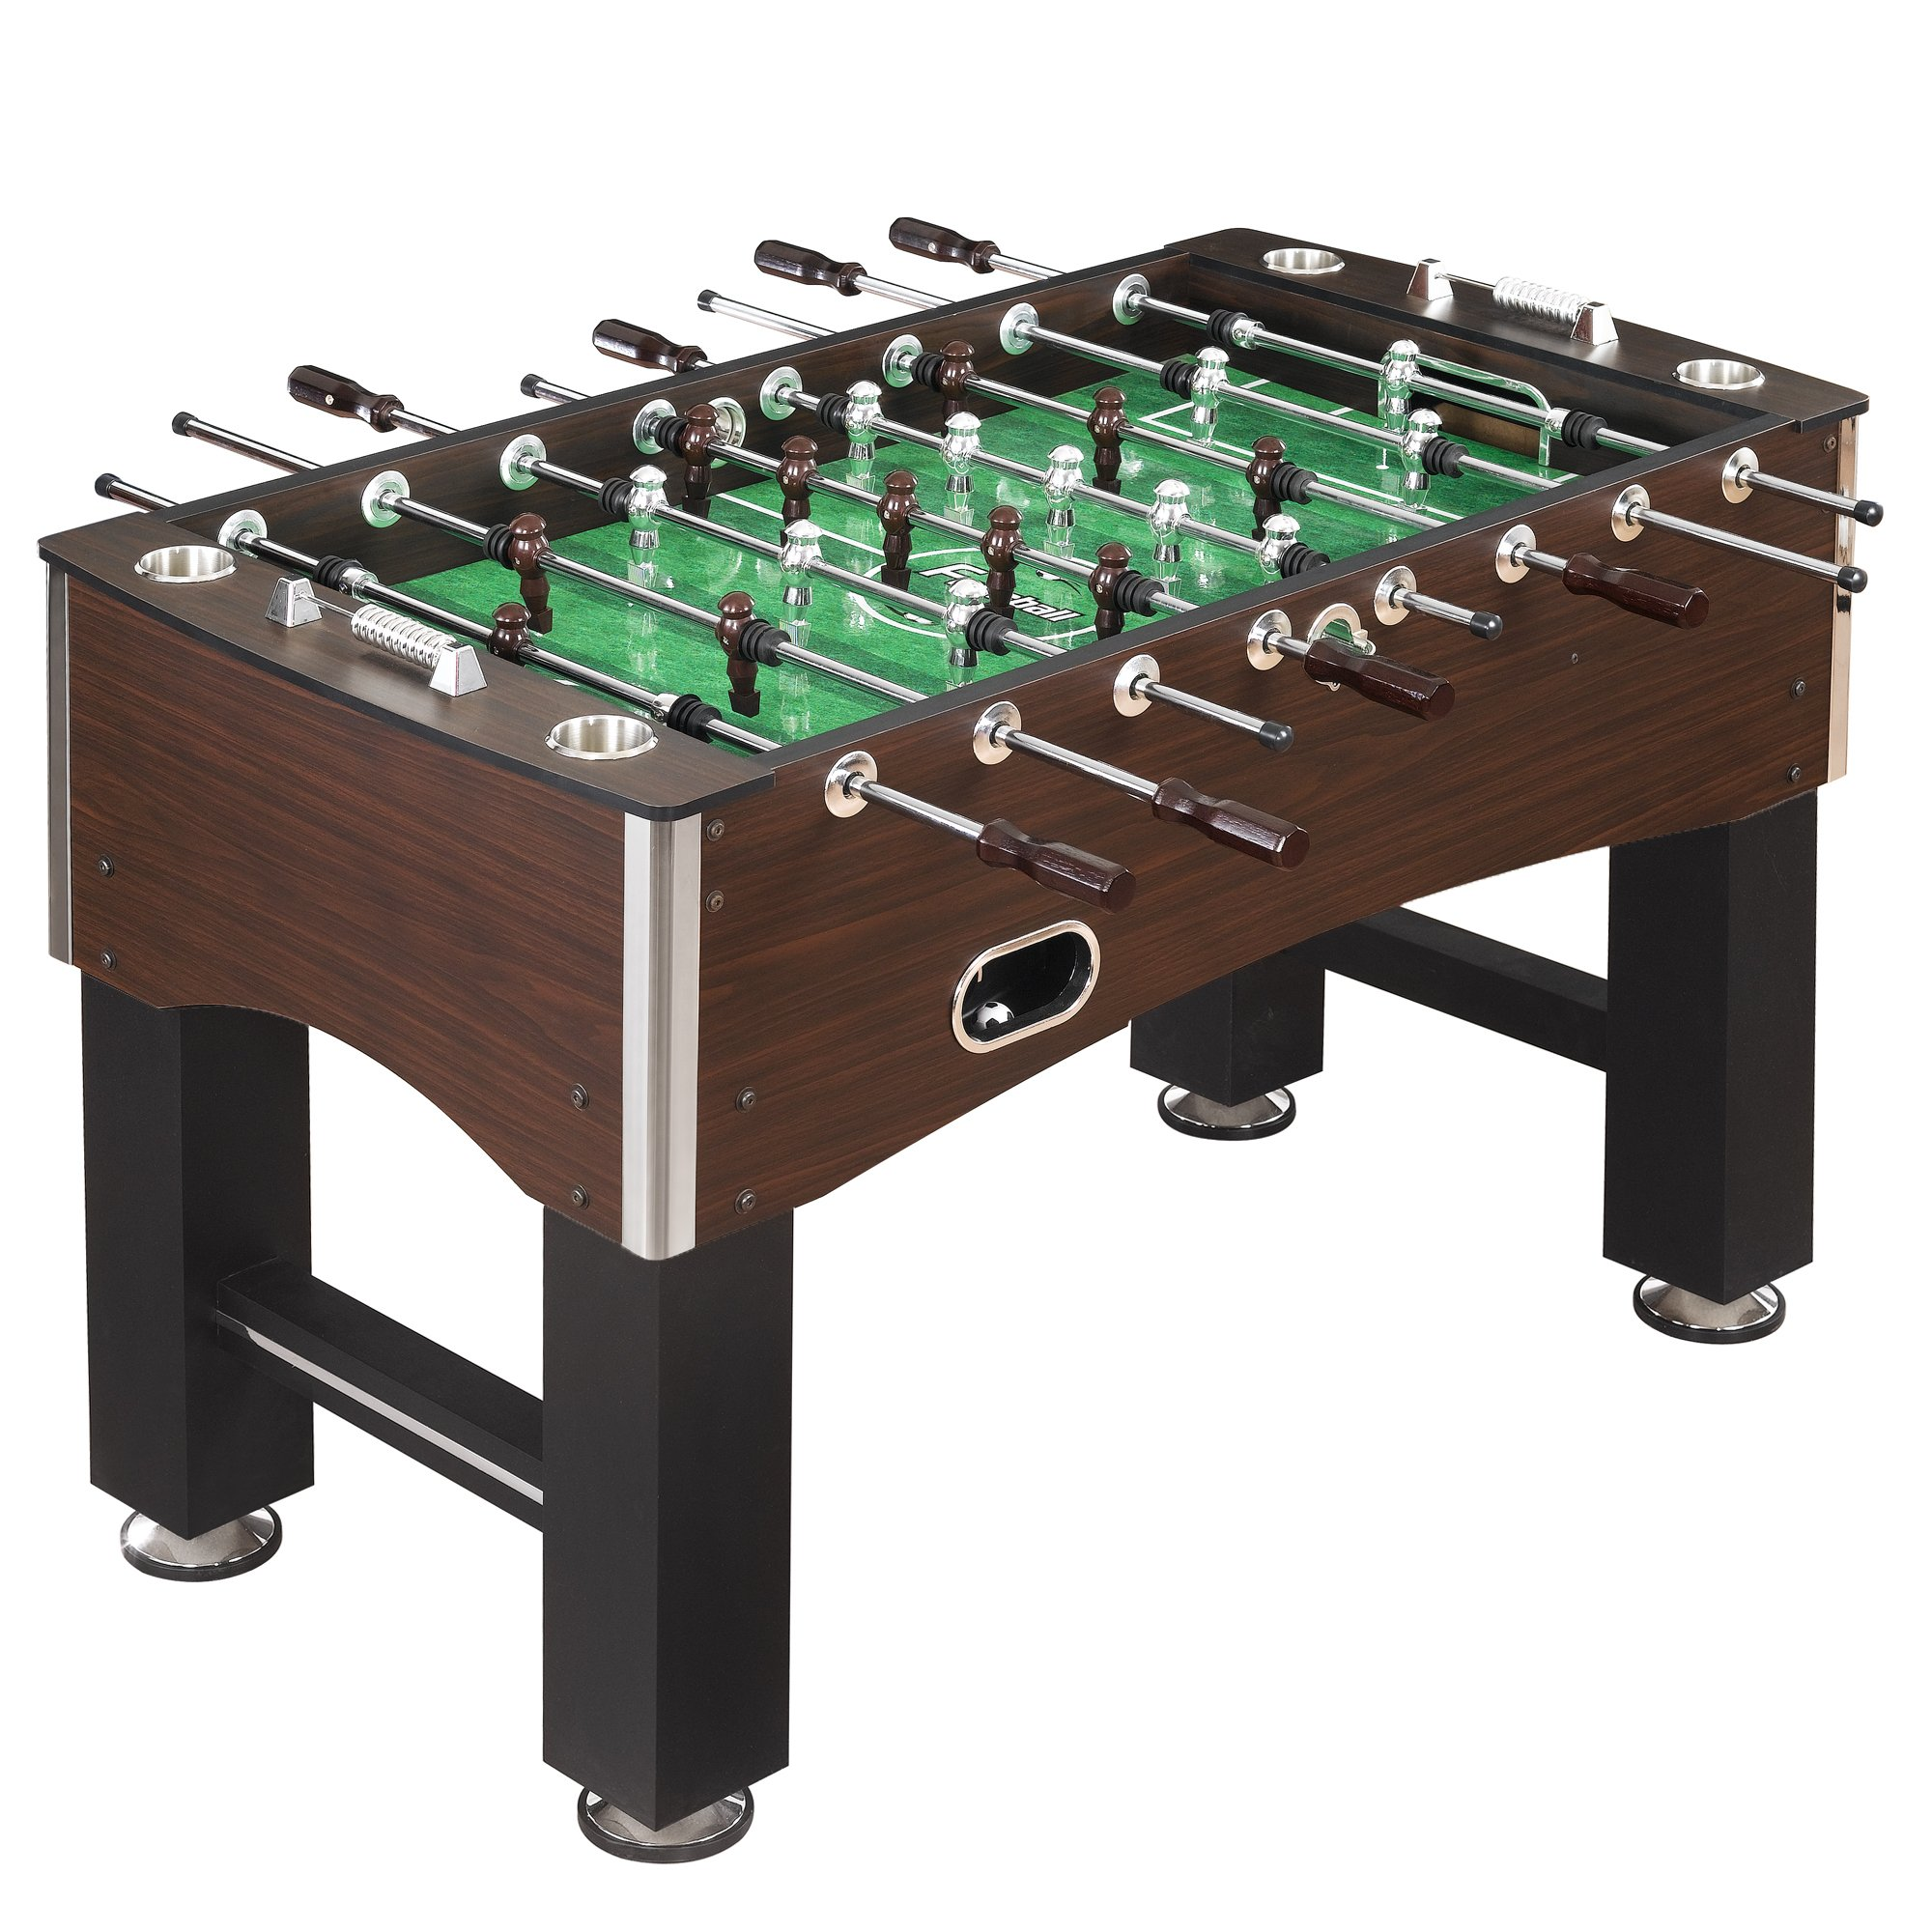 Hathaway 56-Inch Primo Foosball Table, Family Soccer Game with Wood Grain Finish, Analog Scoring and Free Accessories by Hathaway